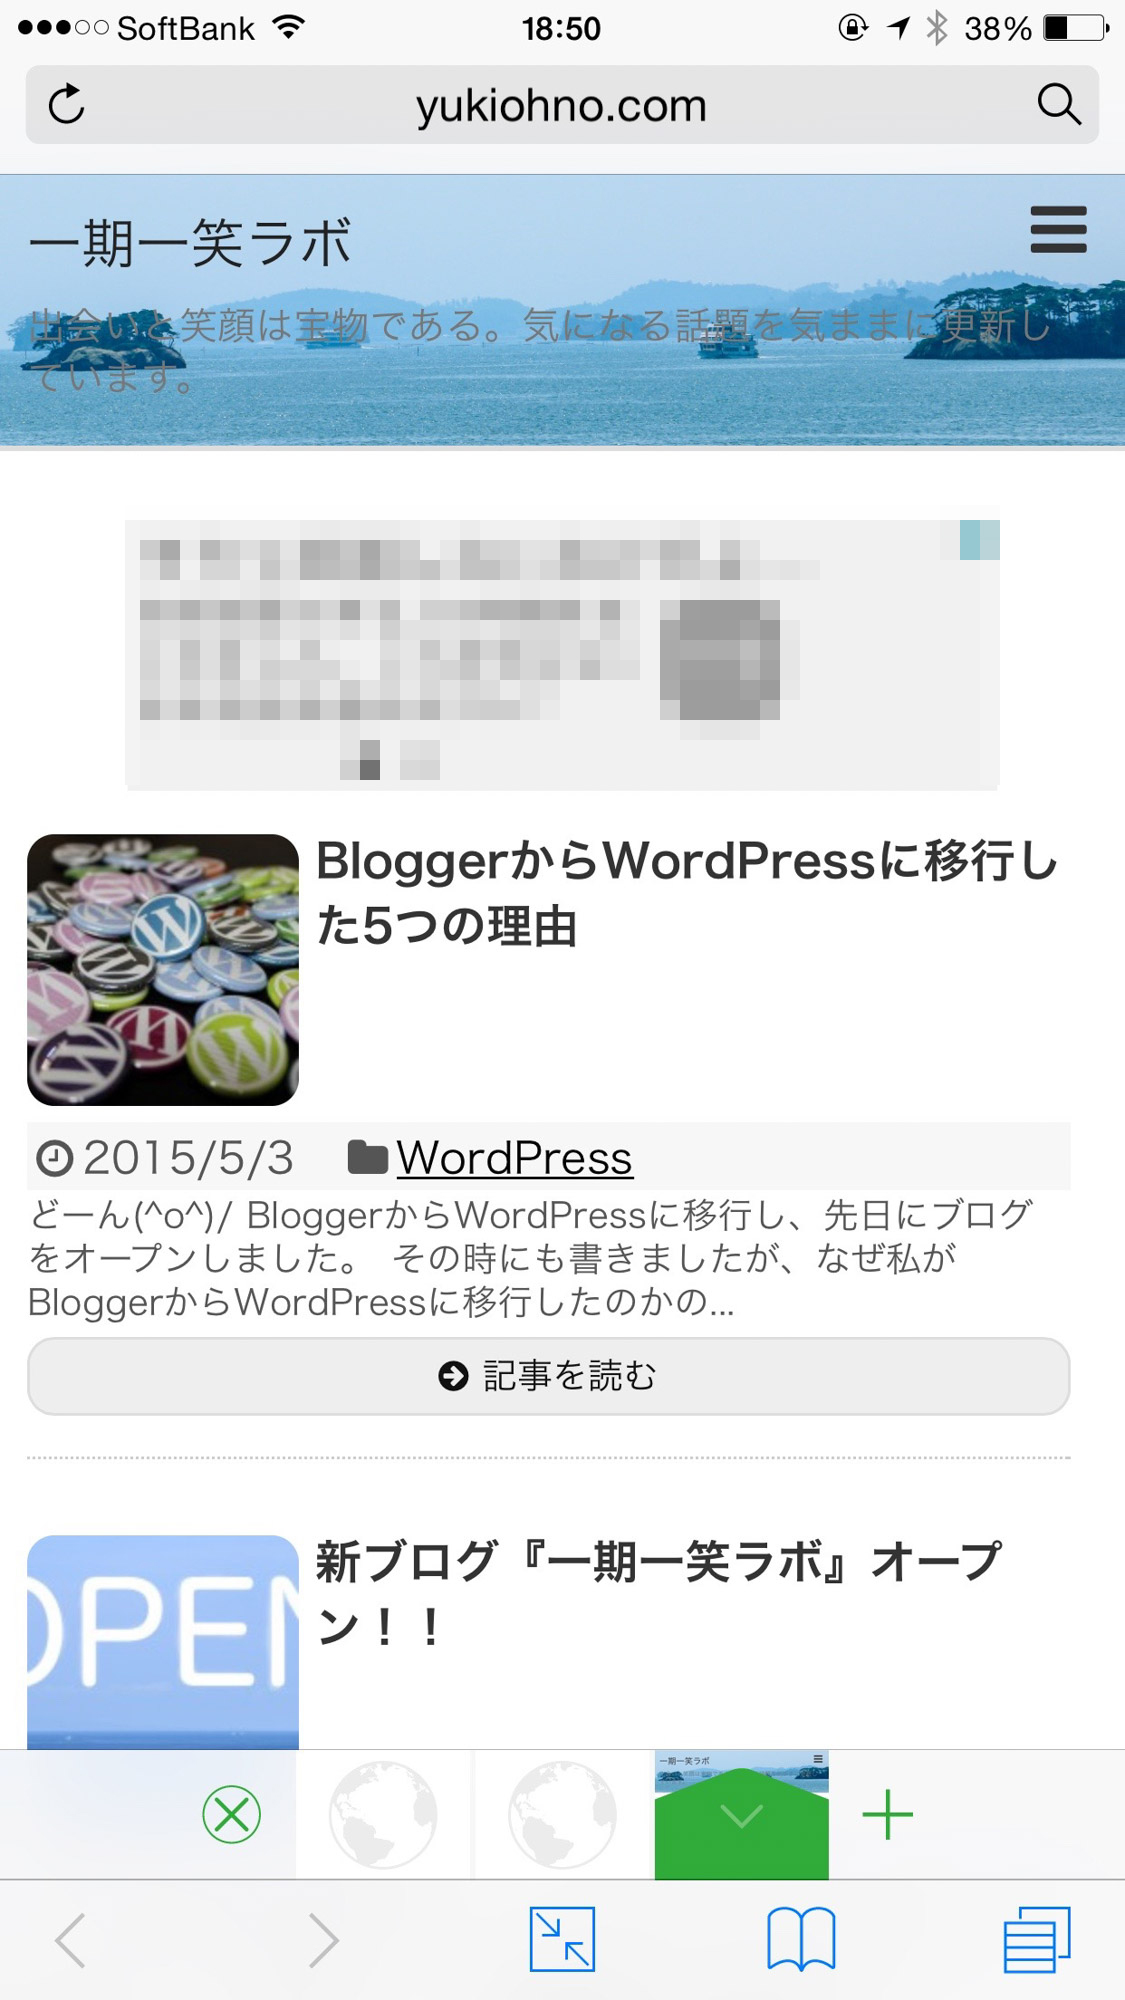 browser-wp-4295